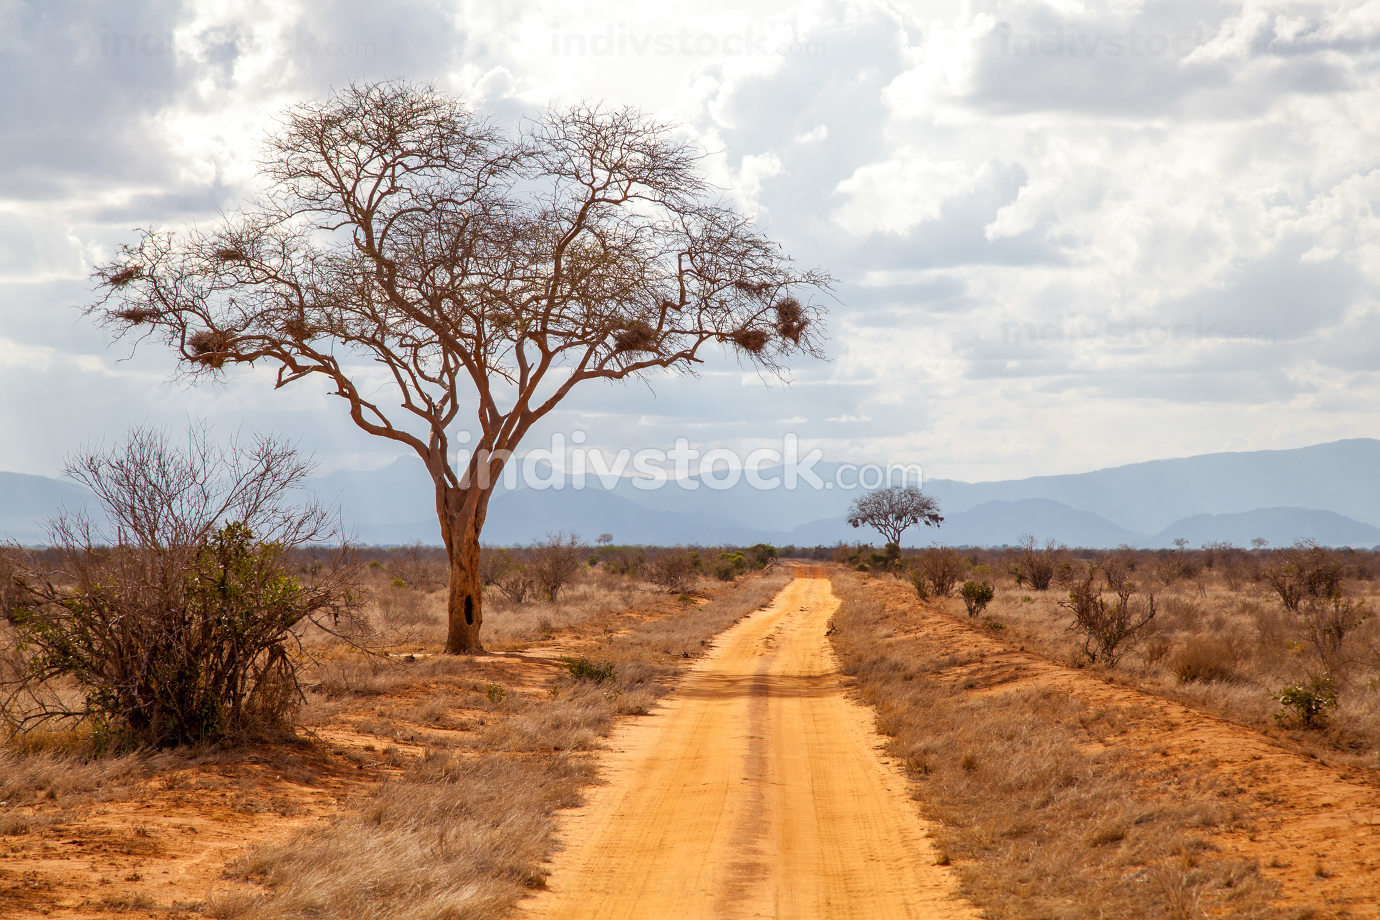 Tree by the road, red soil, hills in the far, Kenya